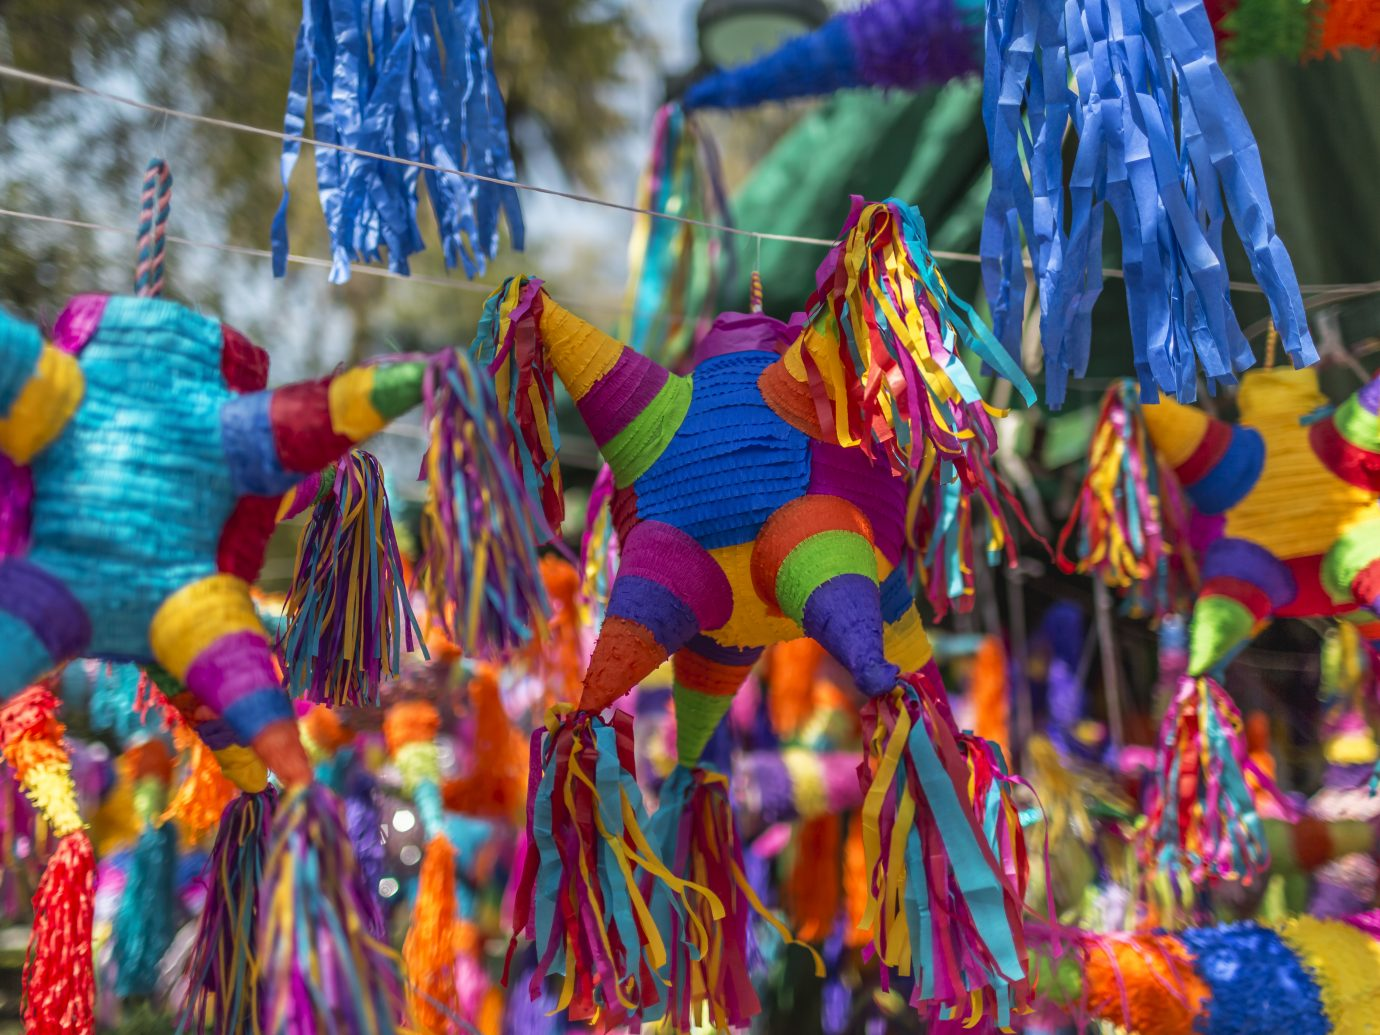 Colorful image from Mexican pinatas. This craft is very popular and can be purchased at any stand throughout Mexico.